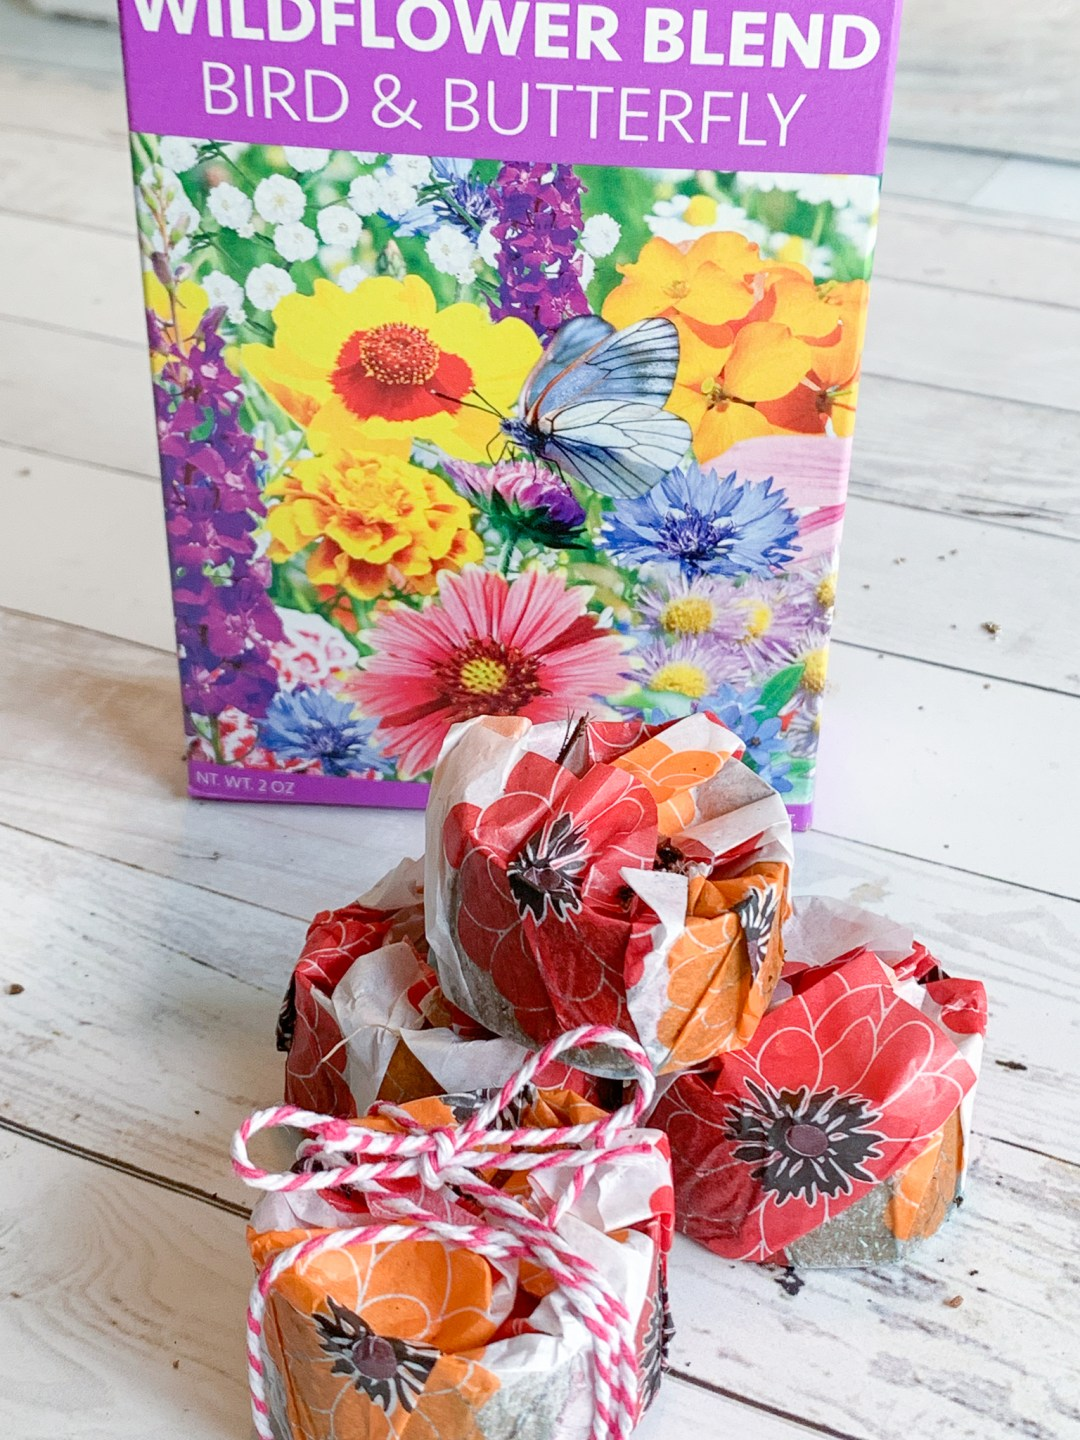 Flower packages flower seeds